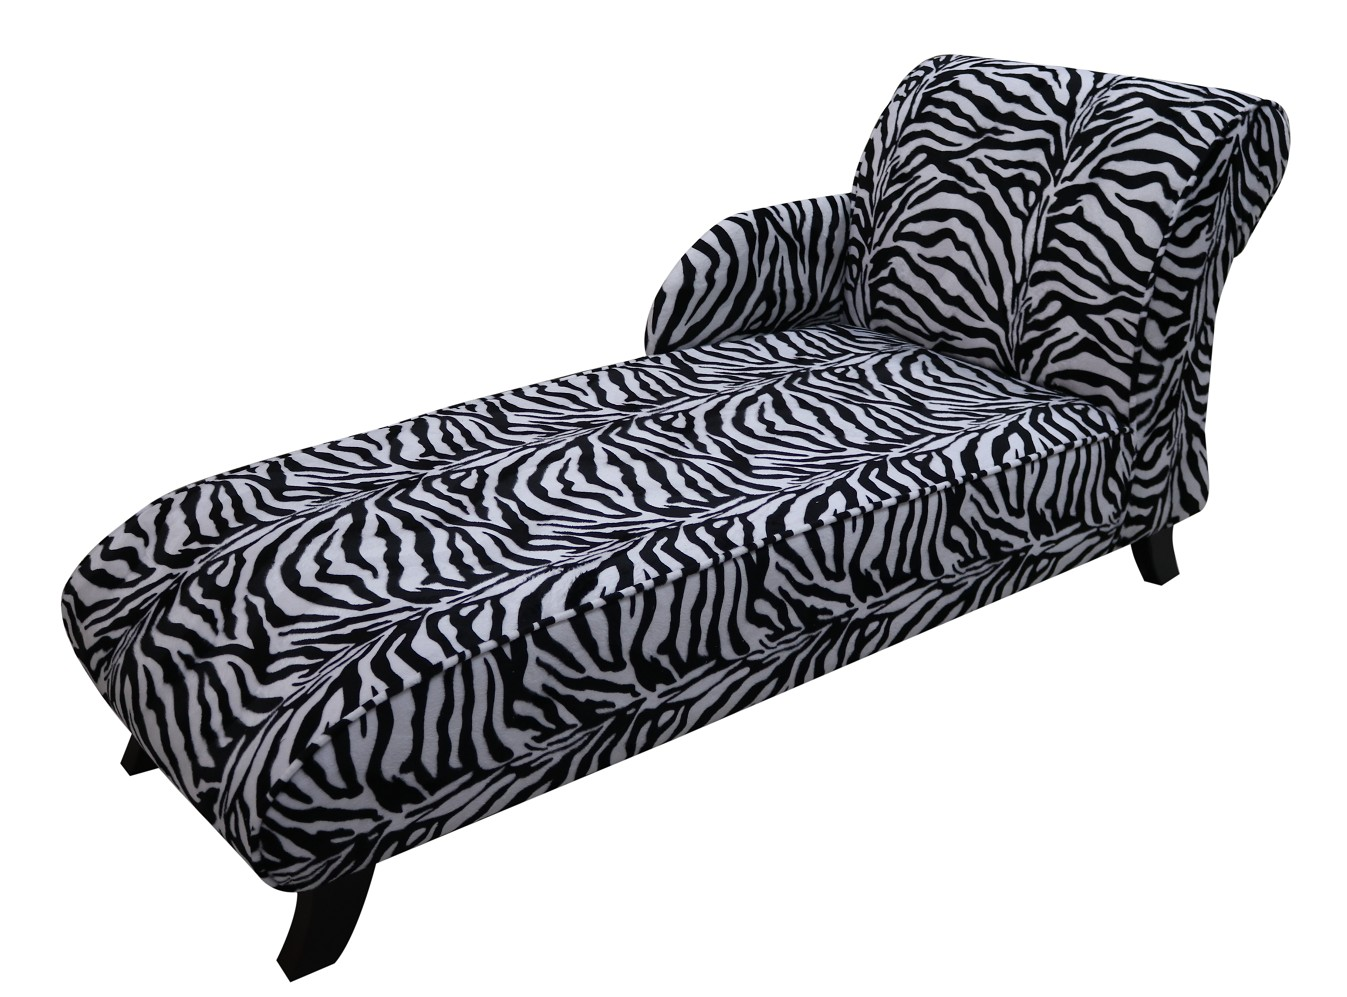 Incredible Zebra Fabric Chaise Lounge Seat Free Warranty Vintage Andrewgaddart Wooden Chair Designs For Living Room Andrewgaddartcom